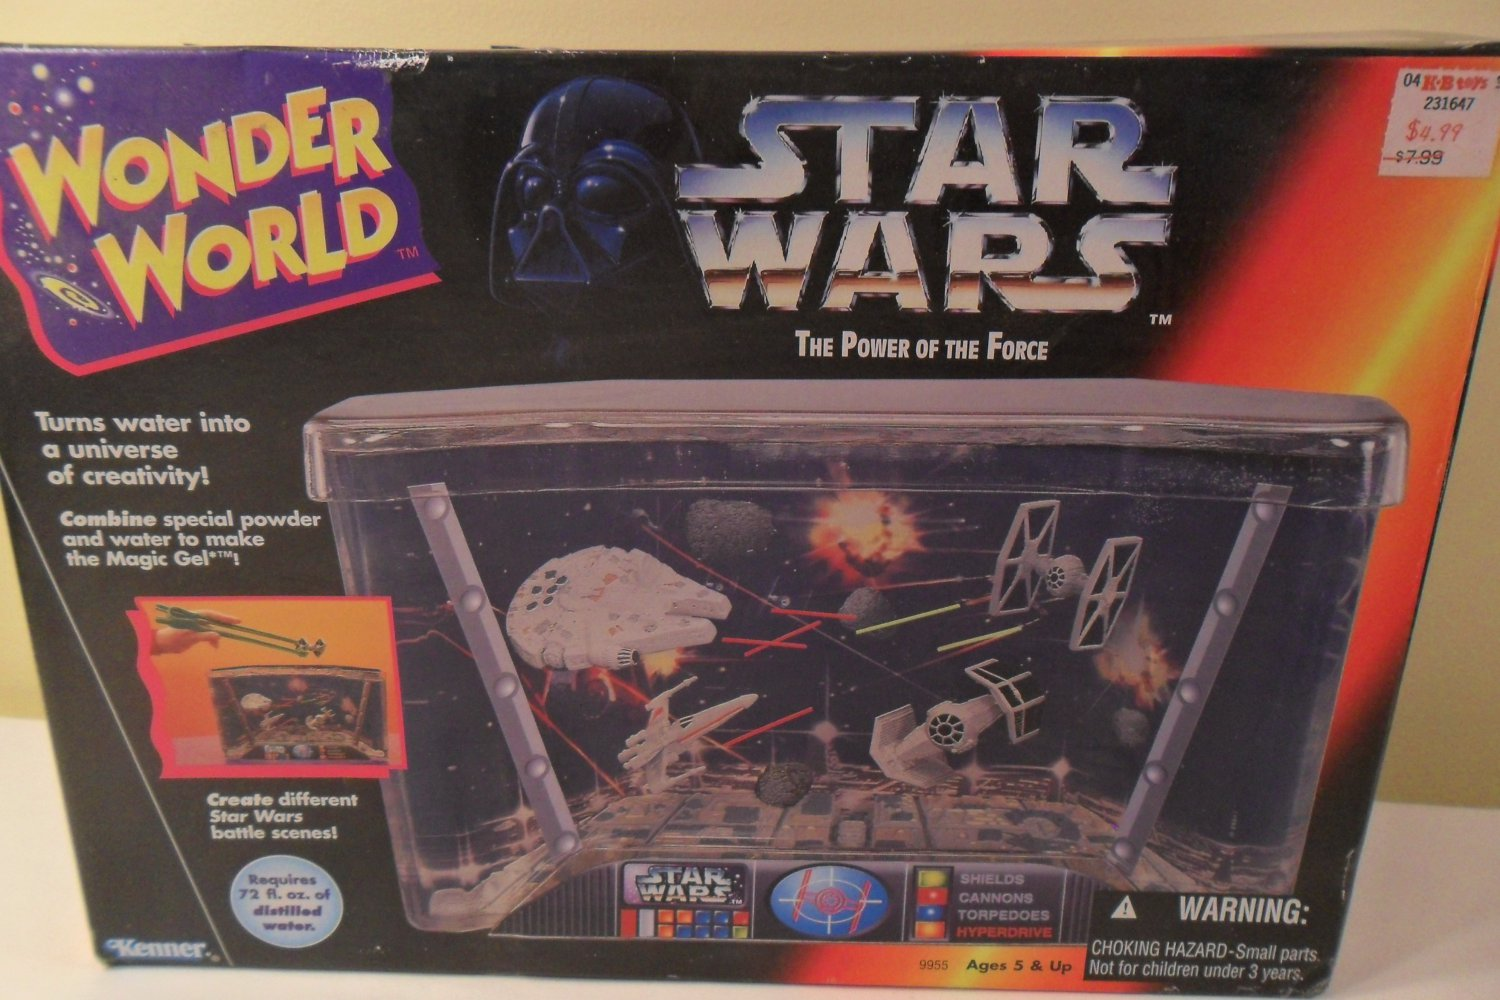 MIB 1995 Wonder World Star Wars Water Tank Toy Kenner (SOLD)